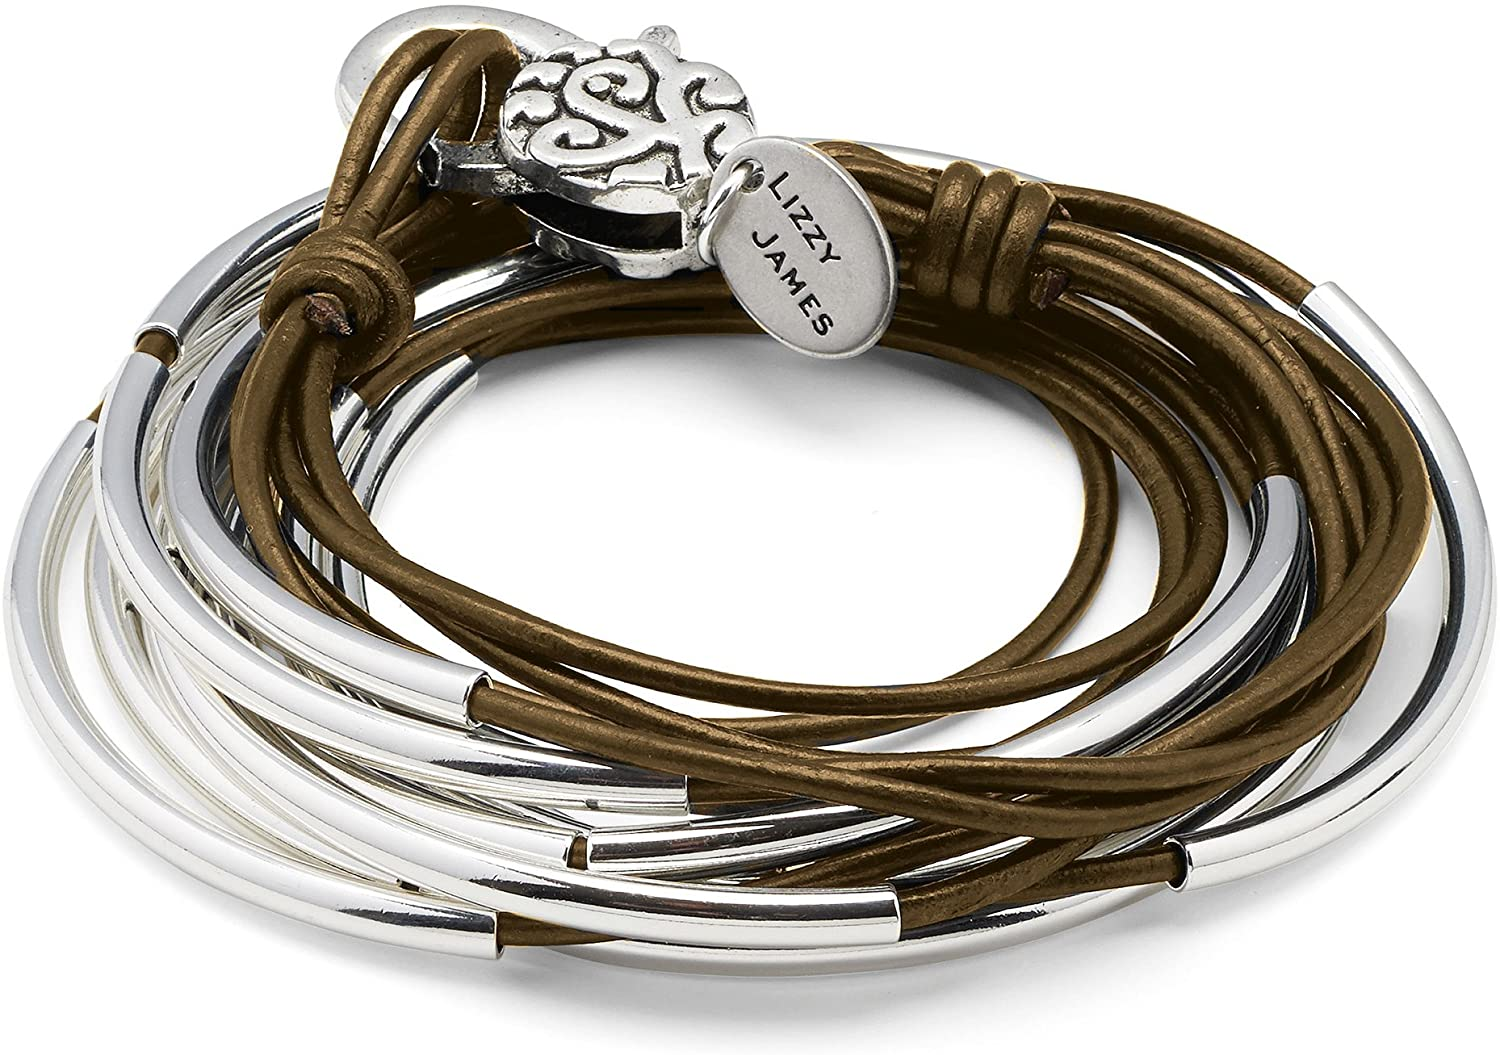 Lizzy Classic Metallic Bronze Leather and Silver Wrap Bracelet Necklace